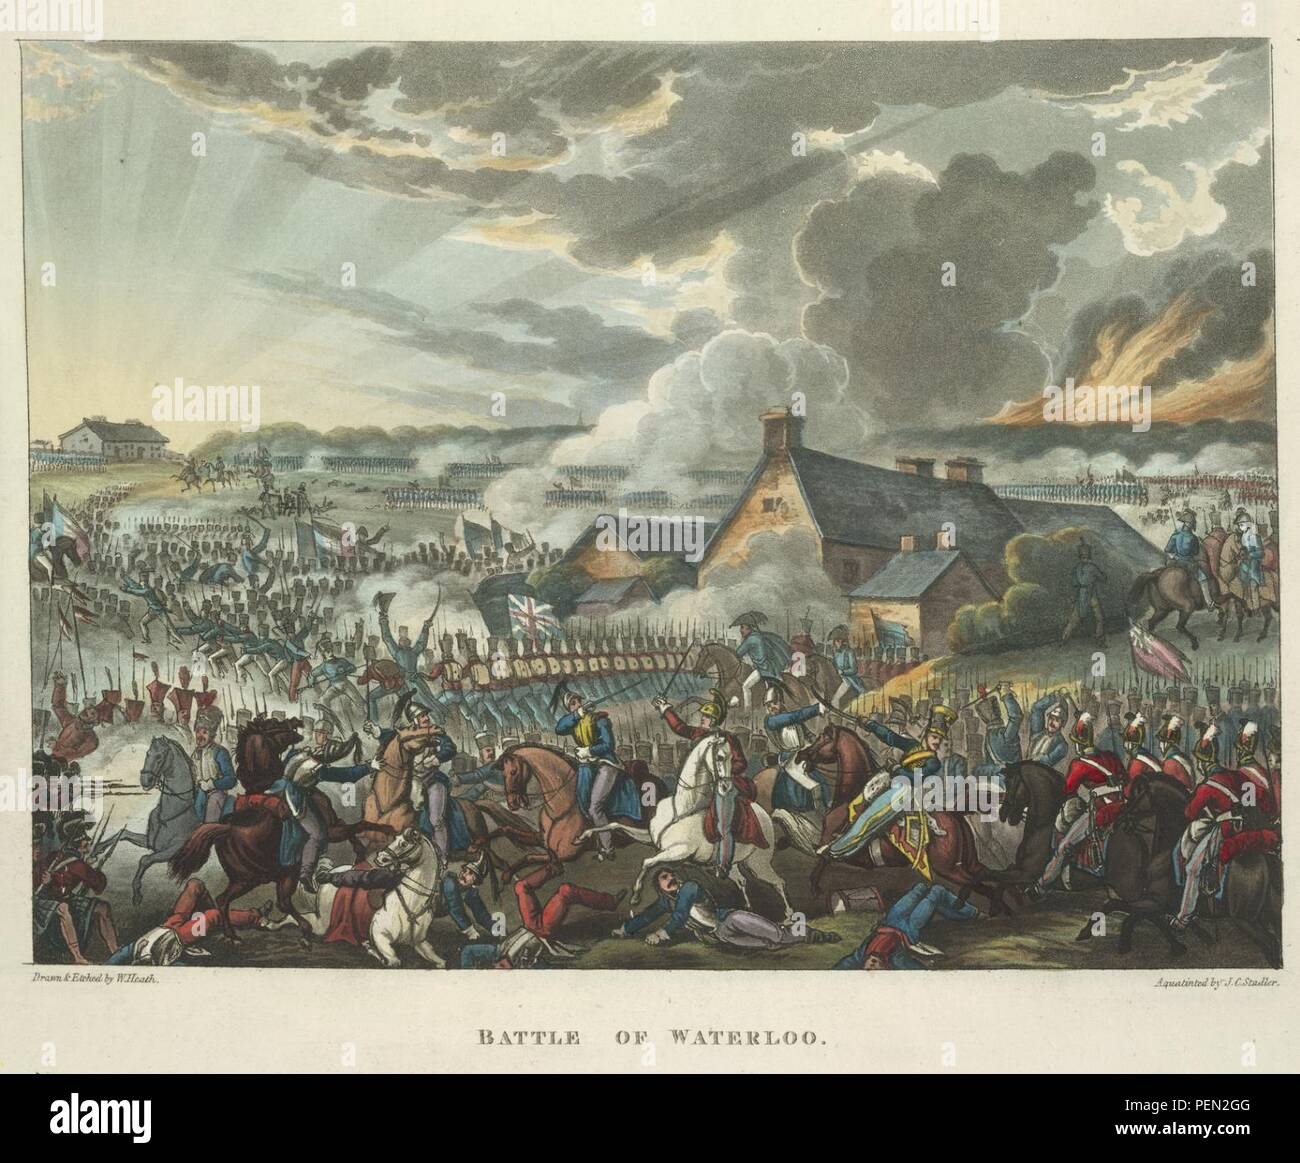 The wars of Wellington, a narrative poem ... - caption  'The Battle of Waterloo, June 18th 1815. Depicting Arthur Wellesley, the Duke of Wellington. The defeat of the French forces of Napoleon Bonaparte. The last major battle of t 0386. - Stock Image